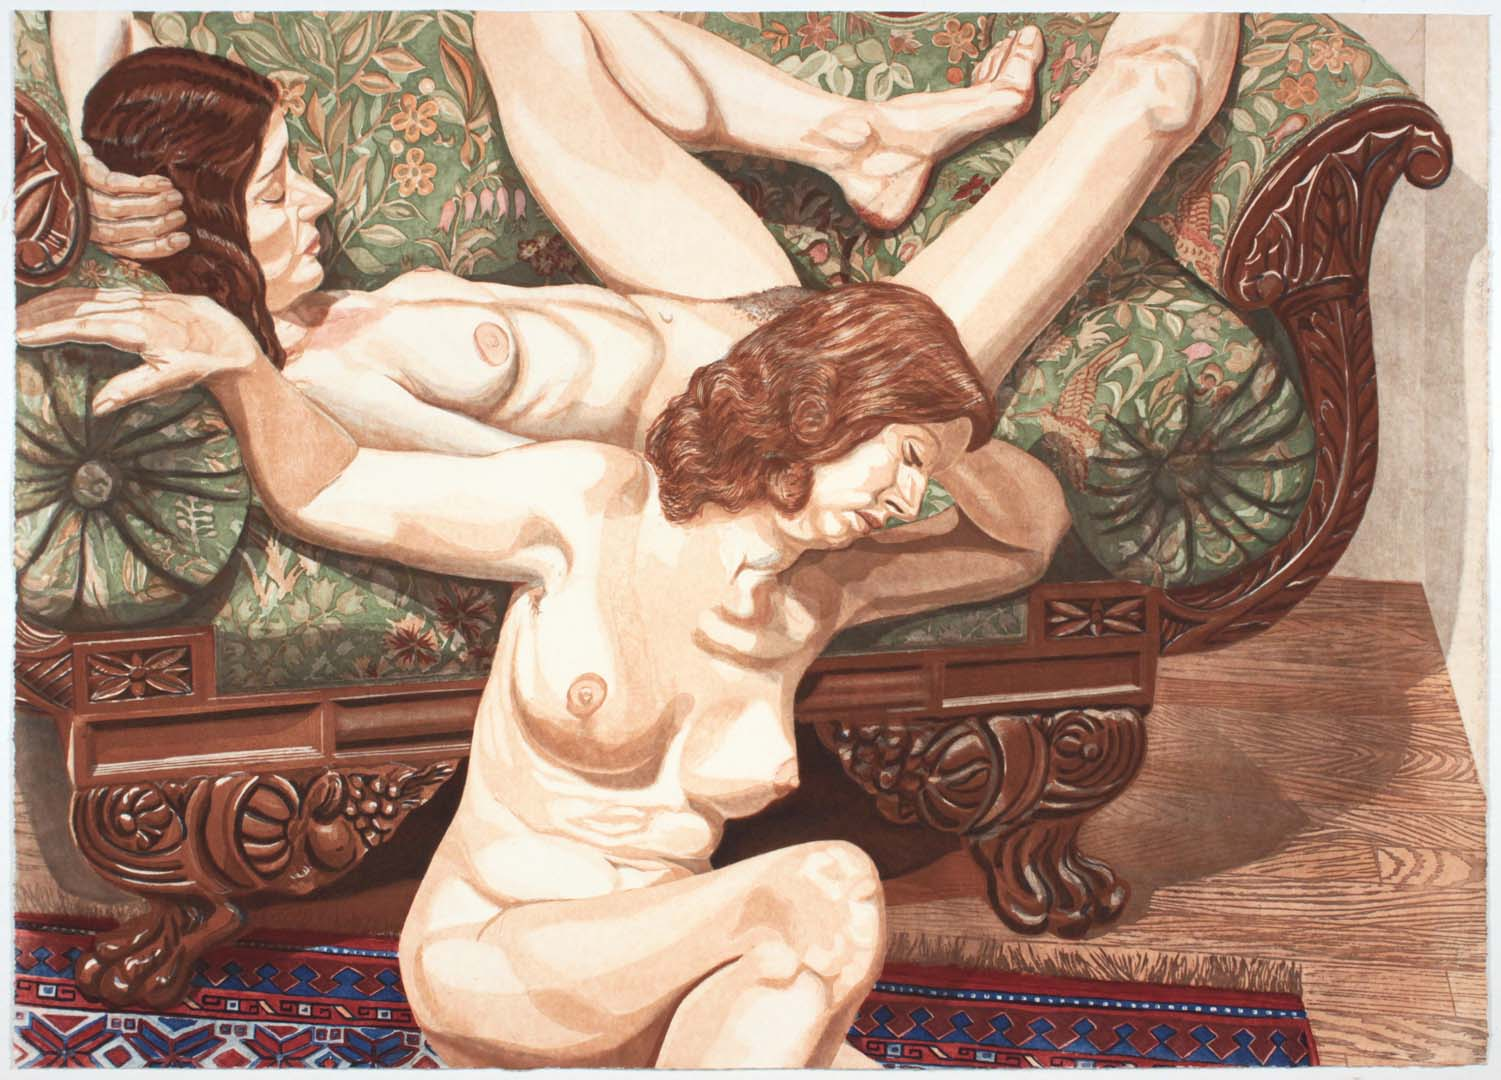 1981 Two Nudes with Federal Sofa Aquatint Etching on Paper 29 x 40.25